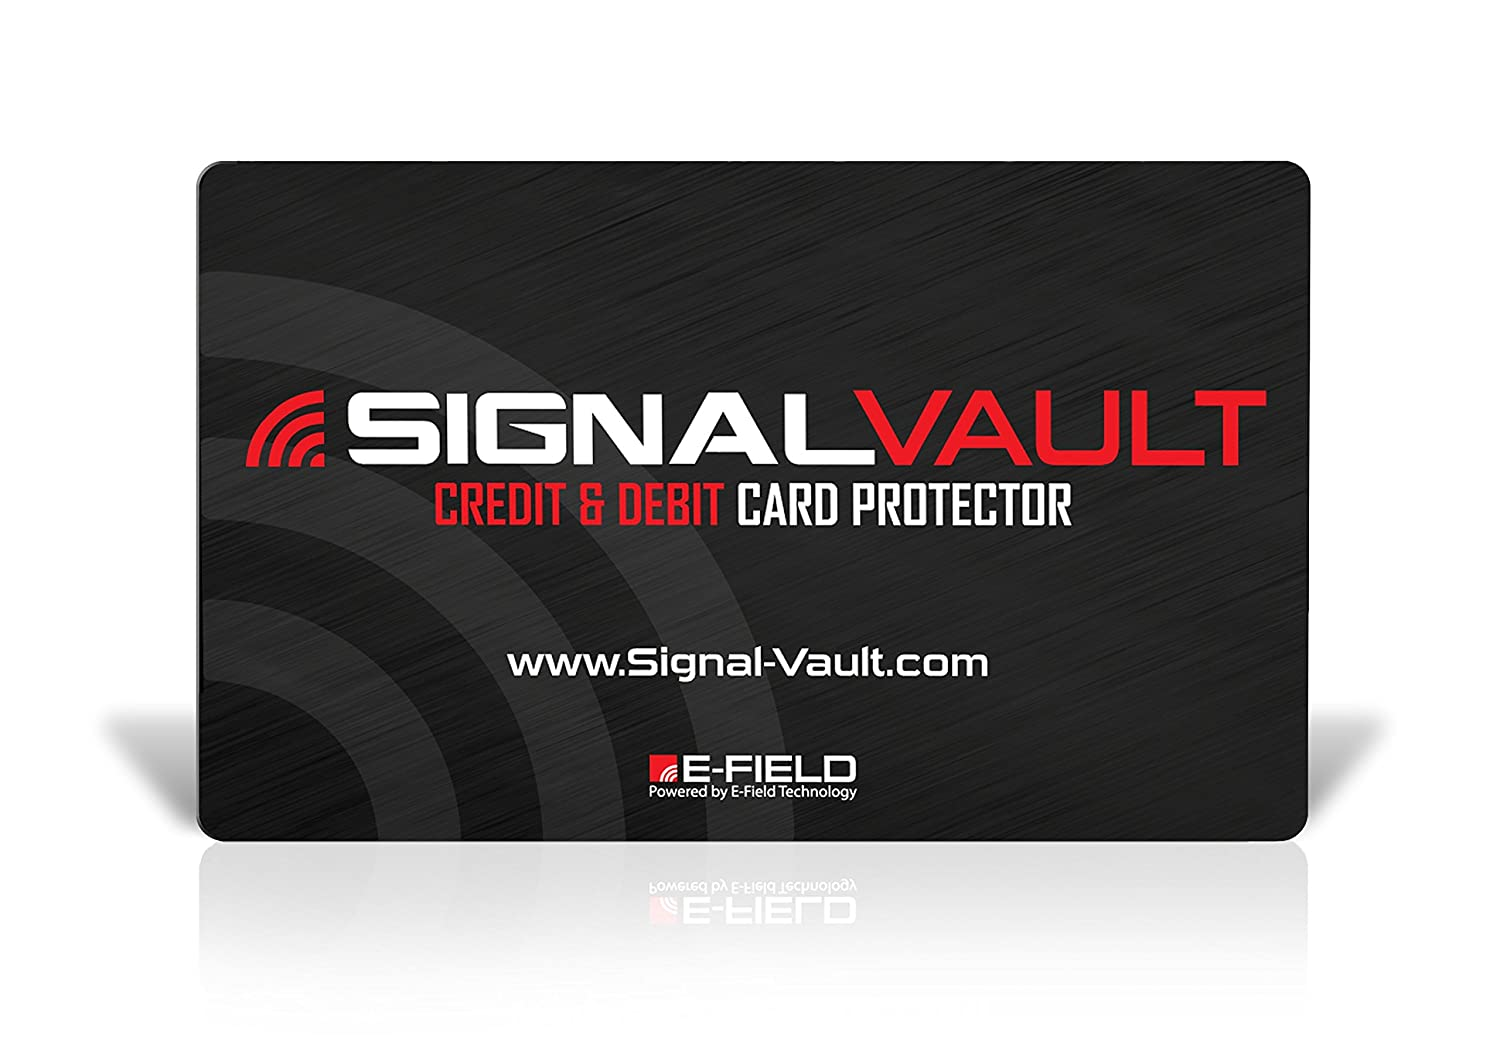 Amazon rfid blocking signal vault credit debit card amazon rfid blocking signal vault credit debit card protector 2 cards office products magicingreecefo Images